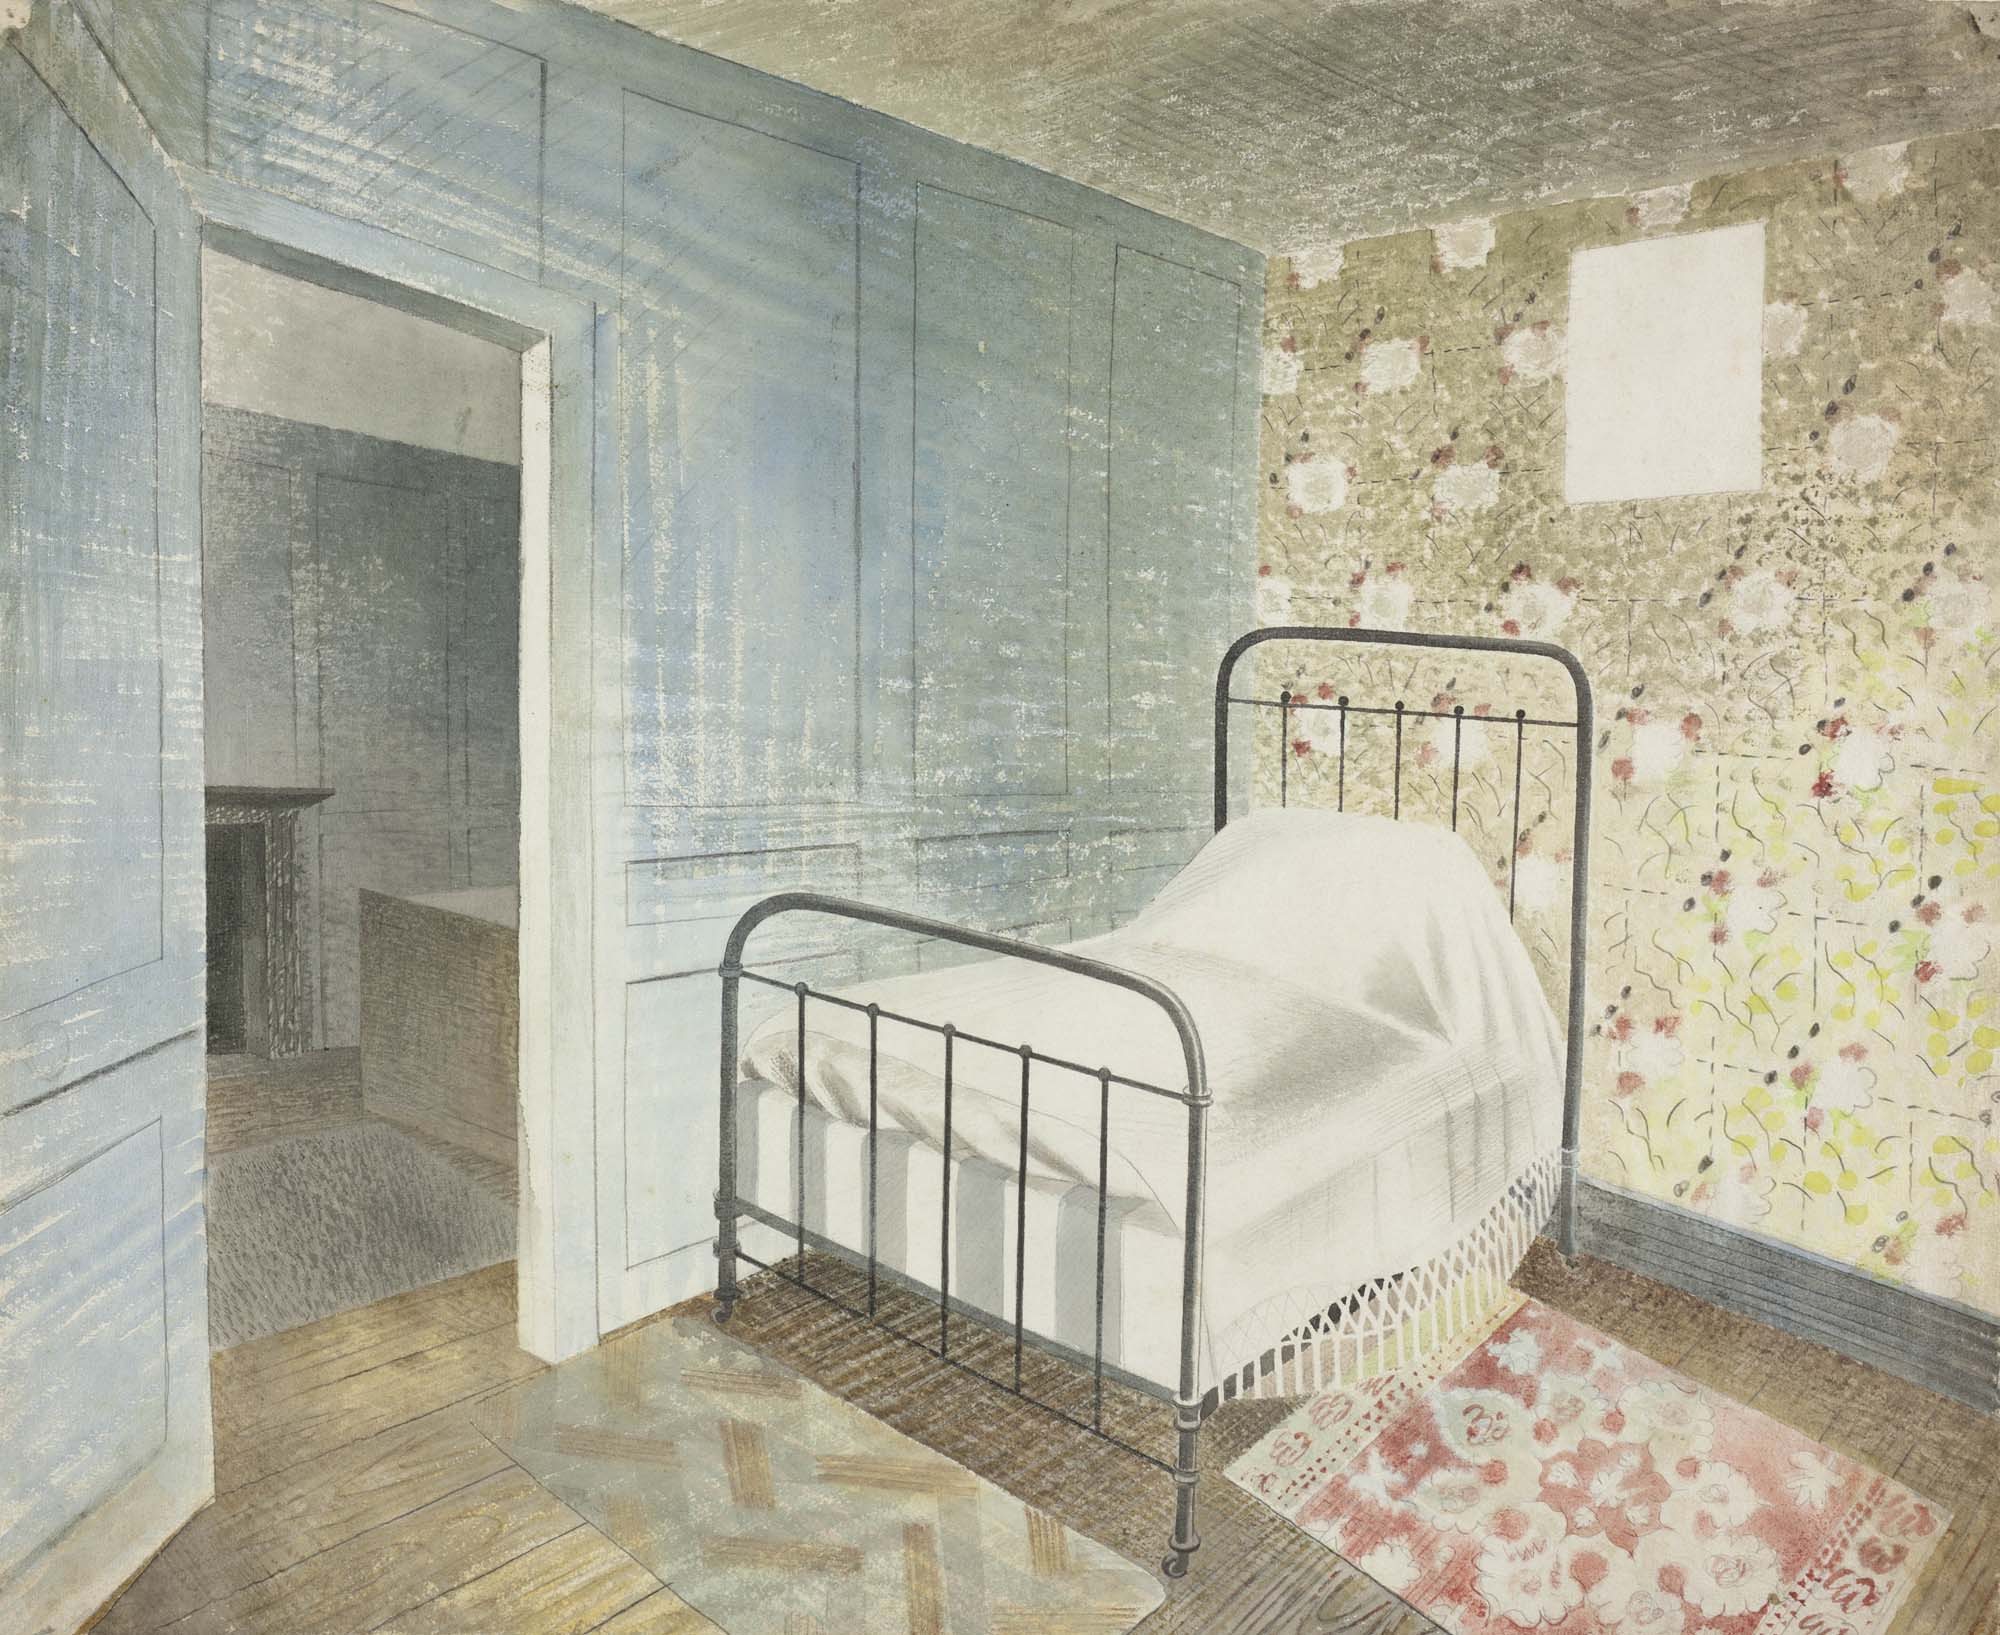 a painth of a solitary single iron framed bed in a bedroom